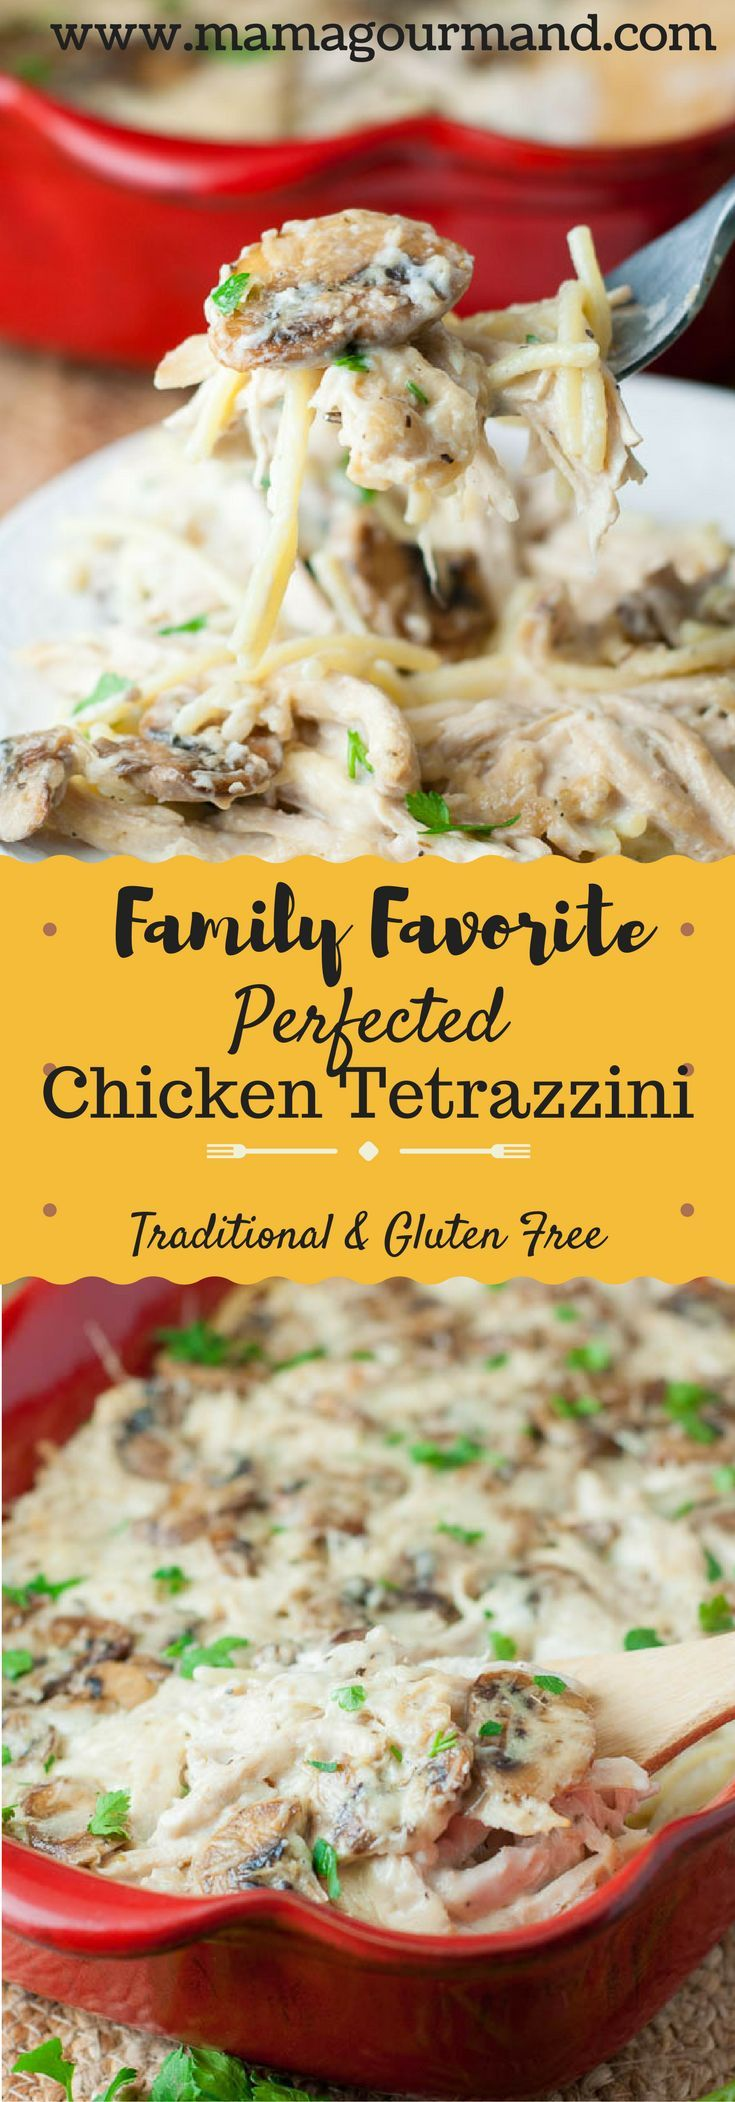 You will not find a better version of chicken tetrazzini casserole! Gluten free directions are included, so now all can enjoy! http://www.mamagourmand.com